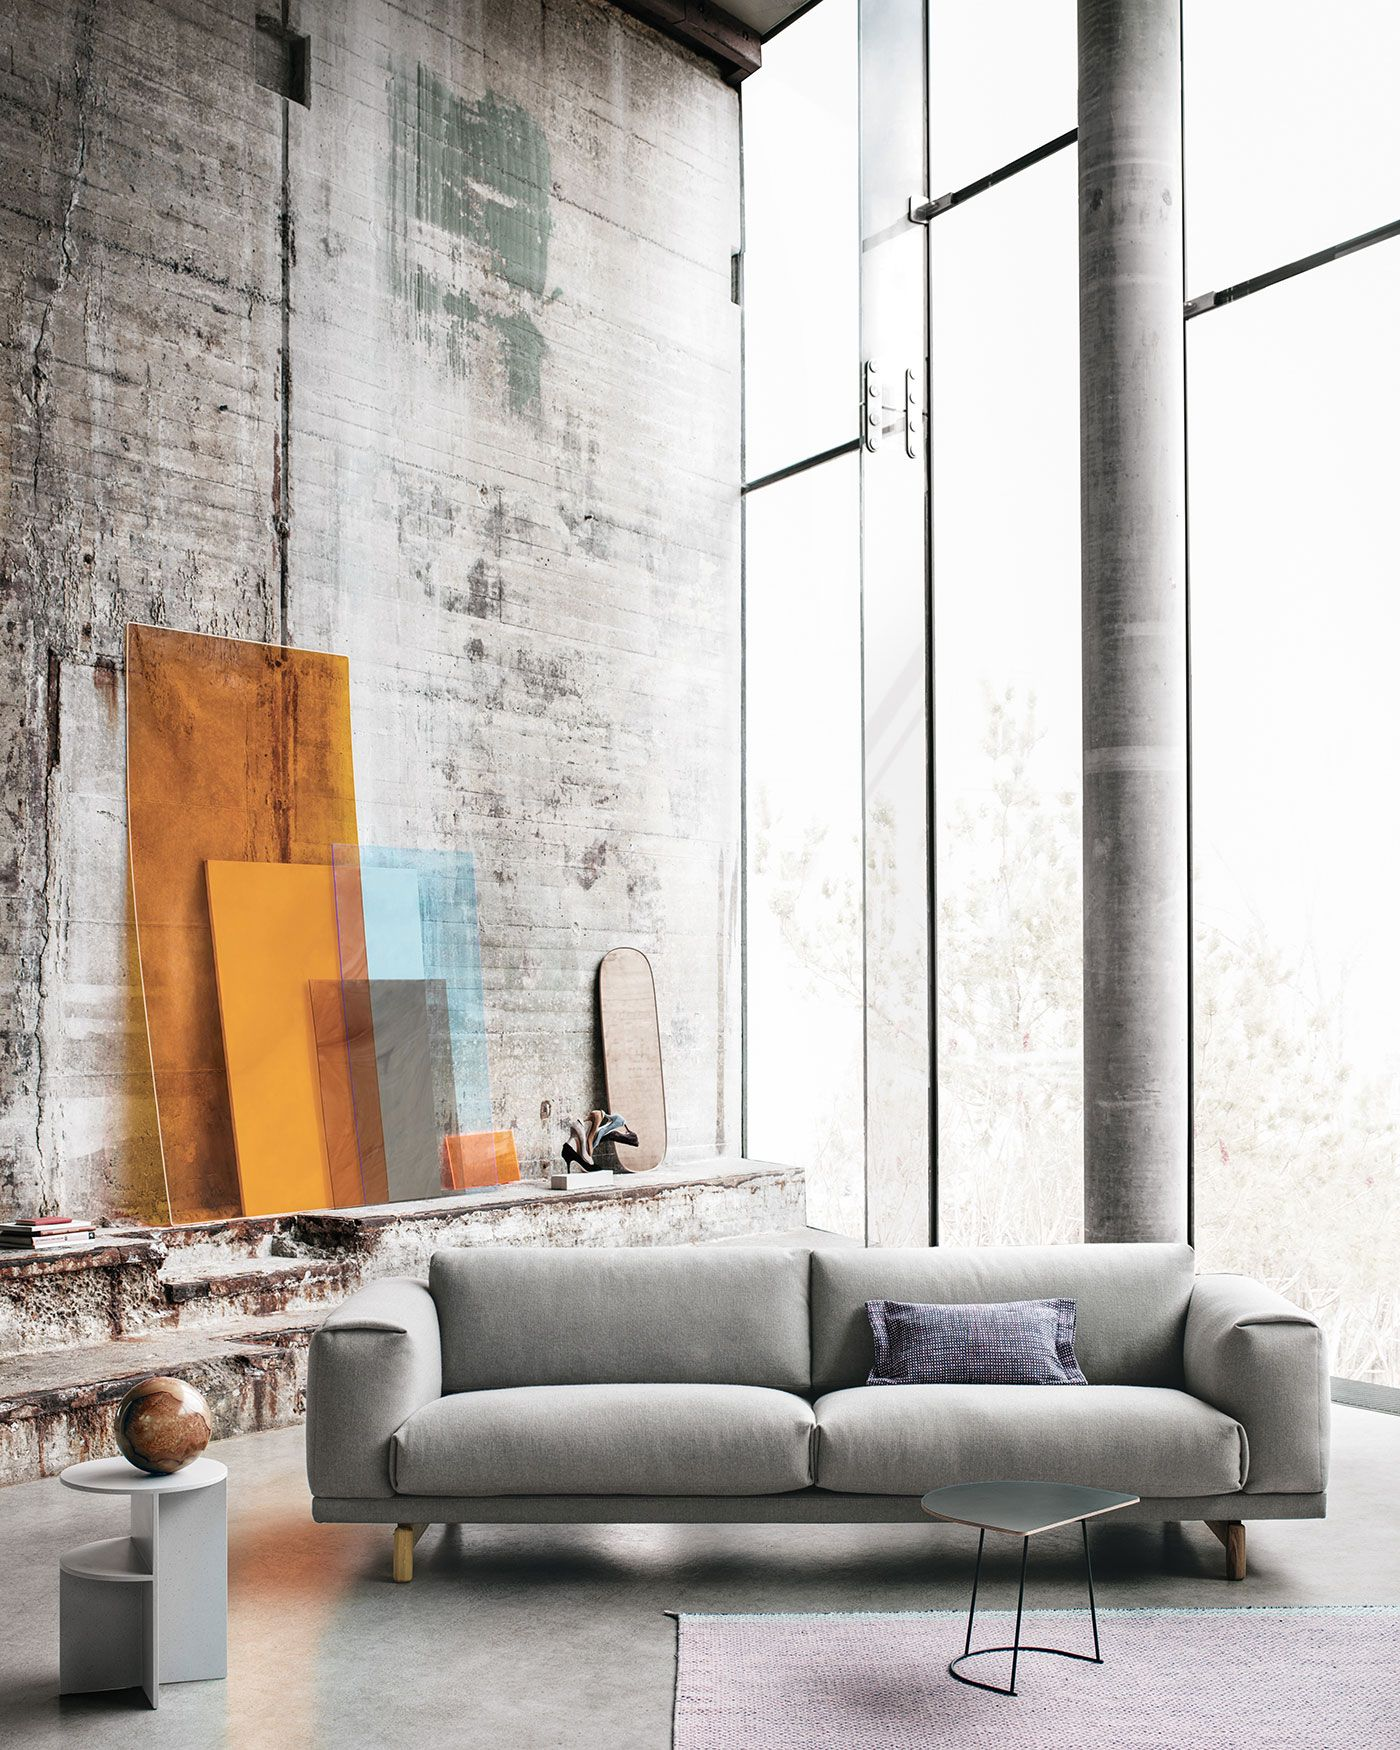 Timeless And Elegant Scandinavian Design Decor Inspiration From Muuto The Rest Series Is Scandinavian Furniture Design Scandinavian Furniture Furniture Design